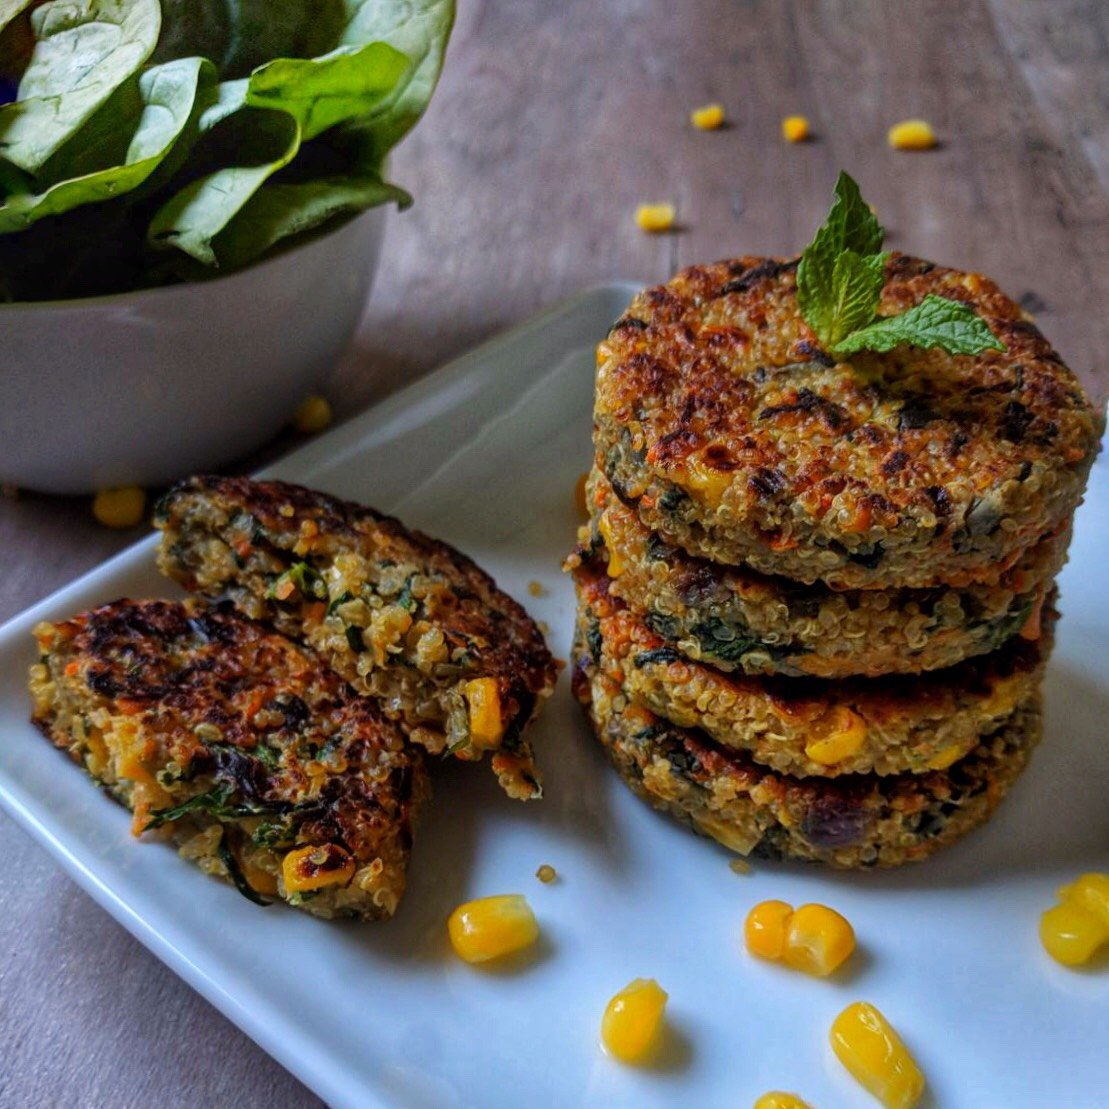 Vegetable Quinoa Patty Recipe